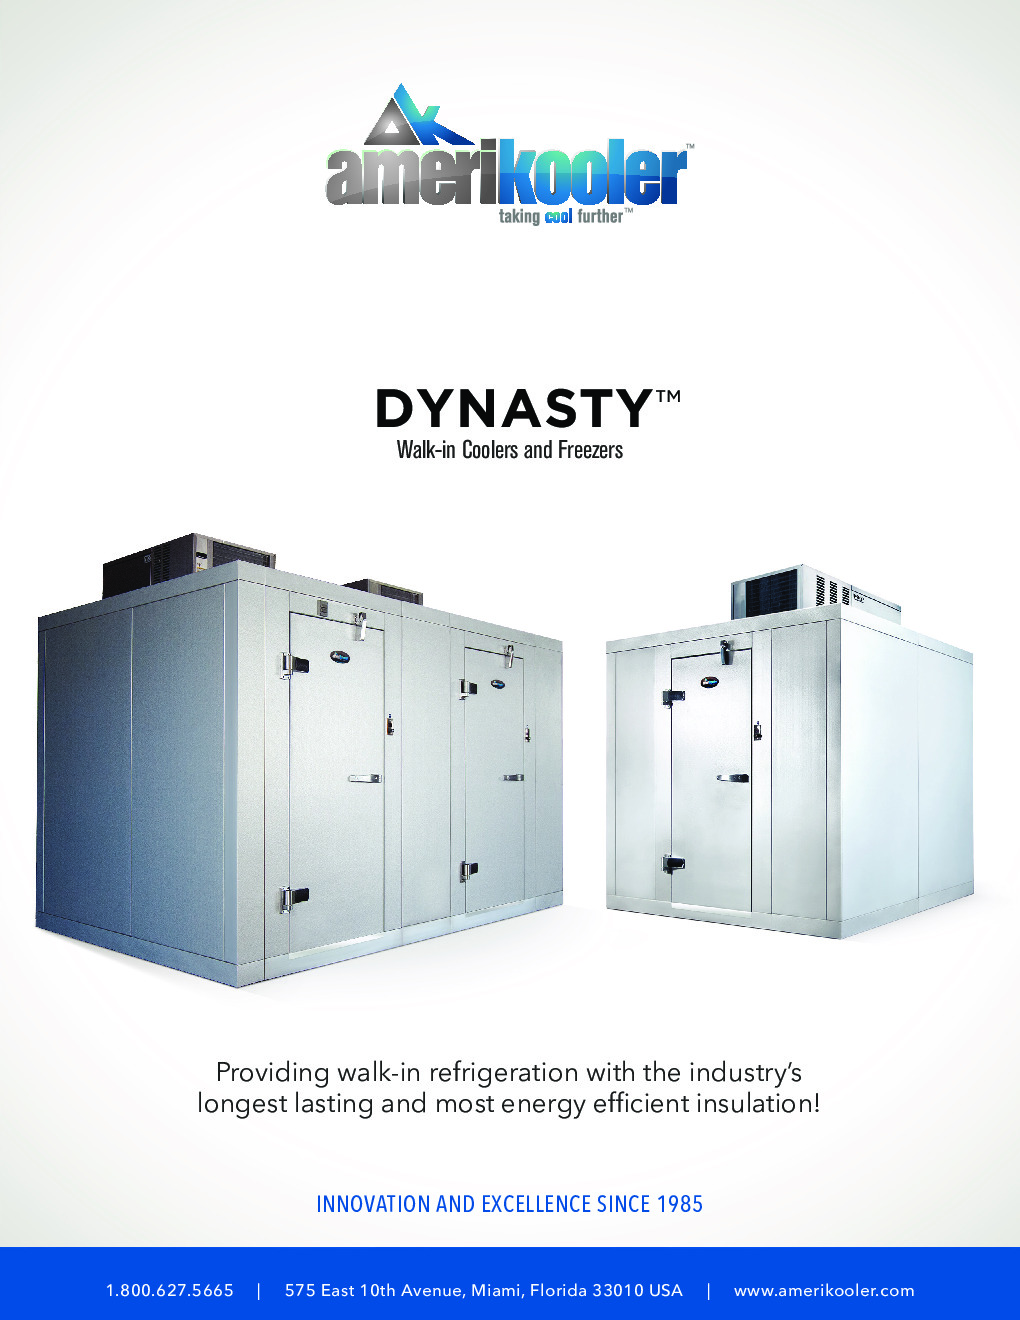 AmeriKooler DW071477F-5/9-SC 7' X 14' Walk-In Cooler, 9' L Cooler with Floor and 5' L Freezer, Self Contained